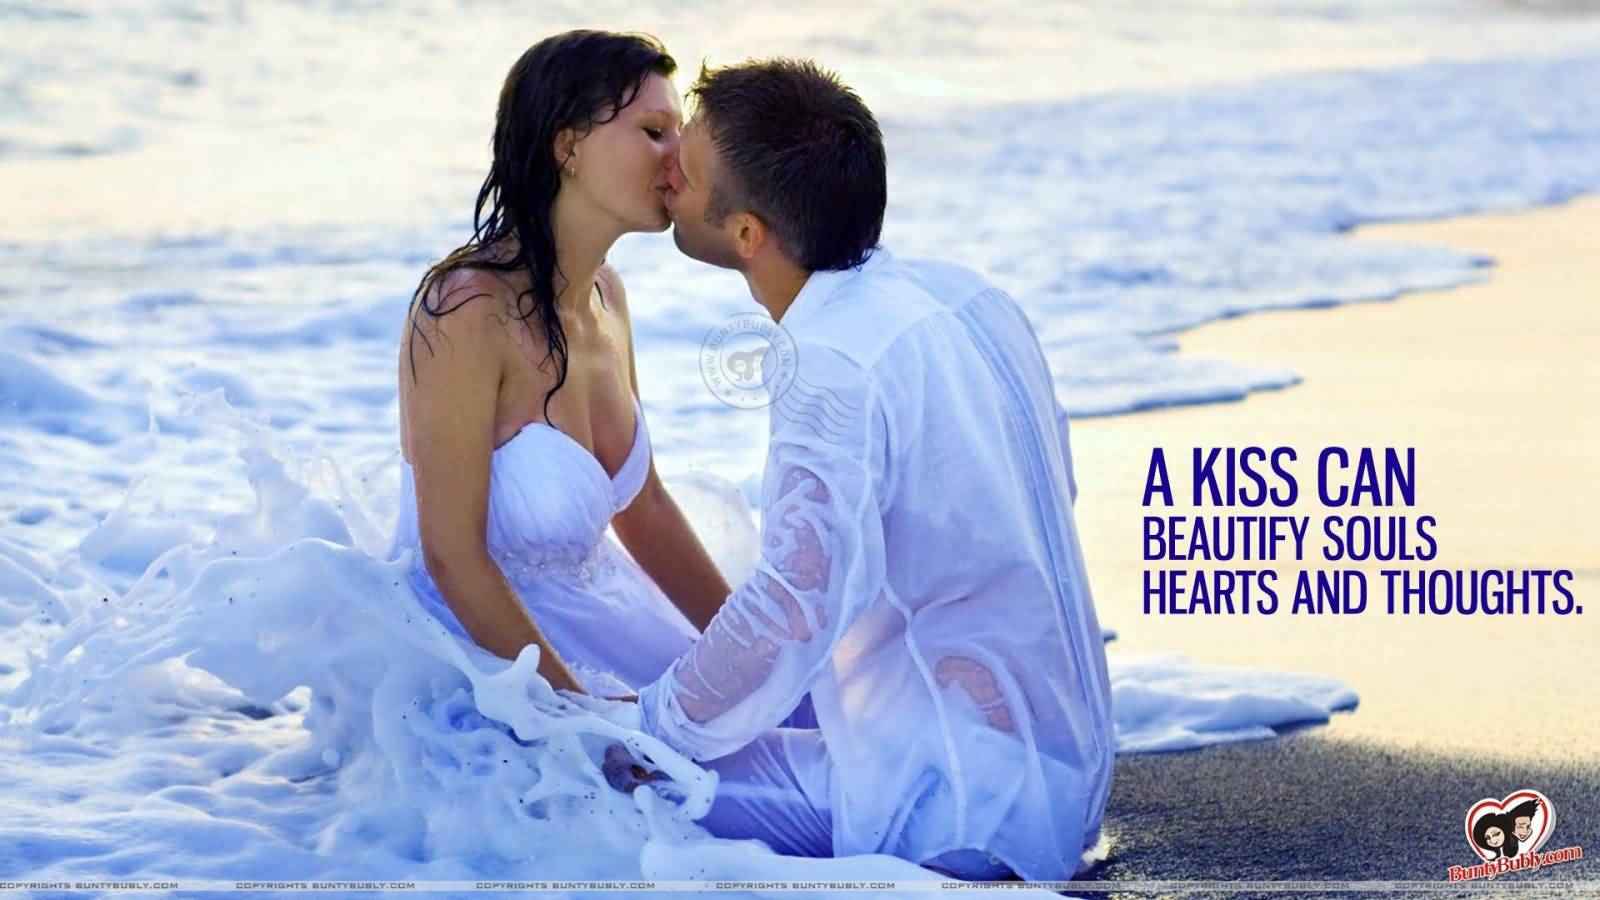 50 happy national kissing day wish pictures and photos